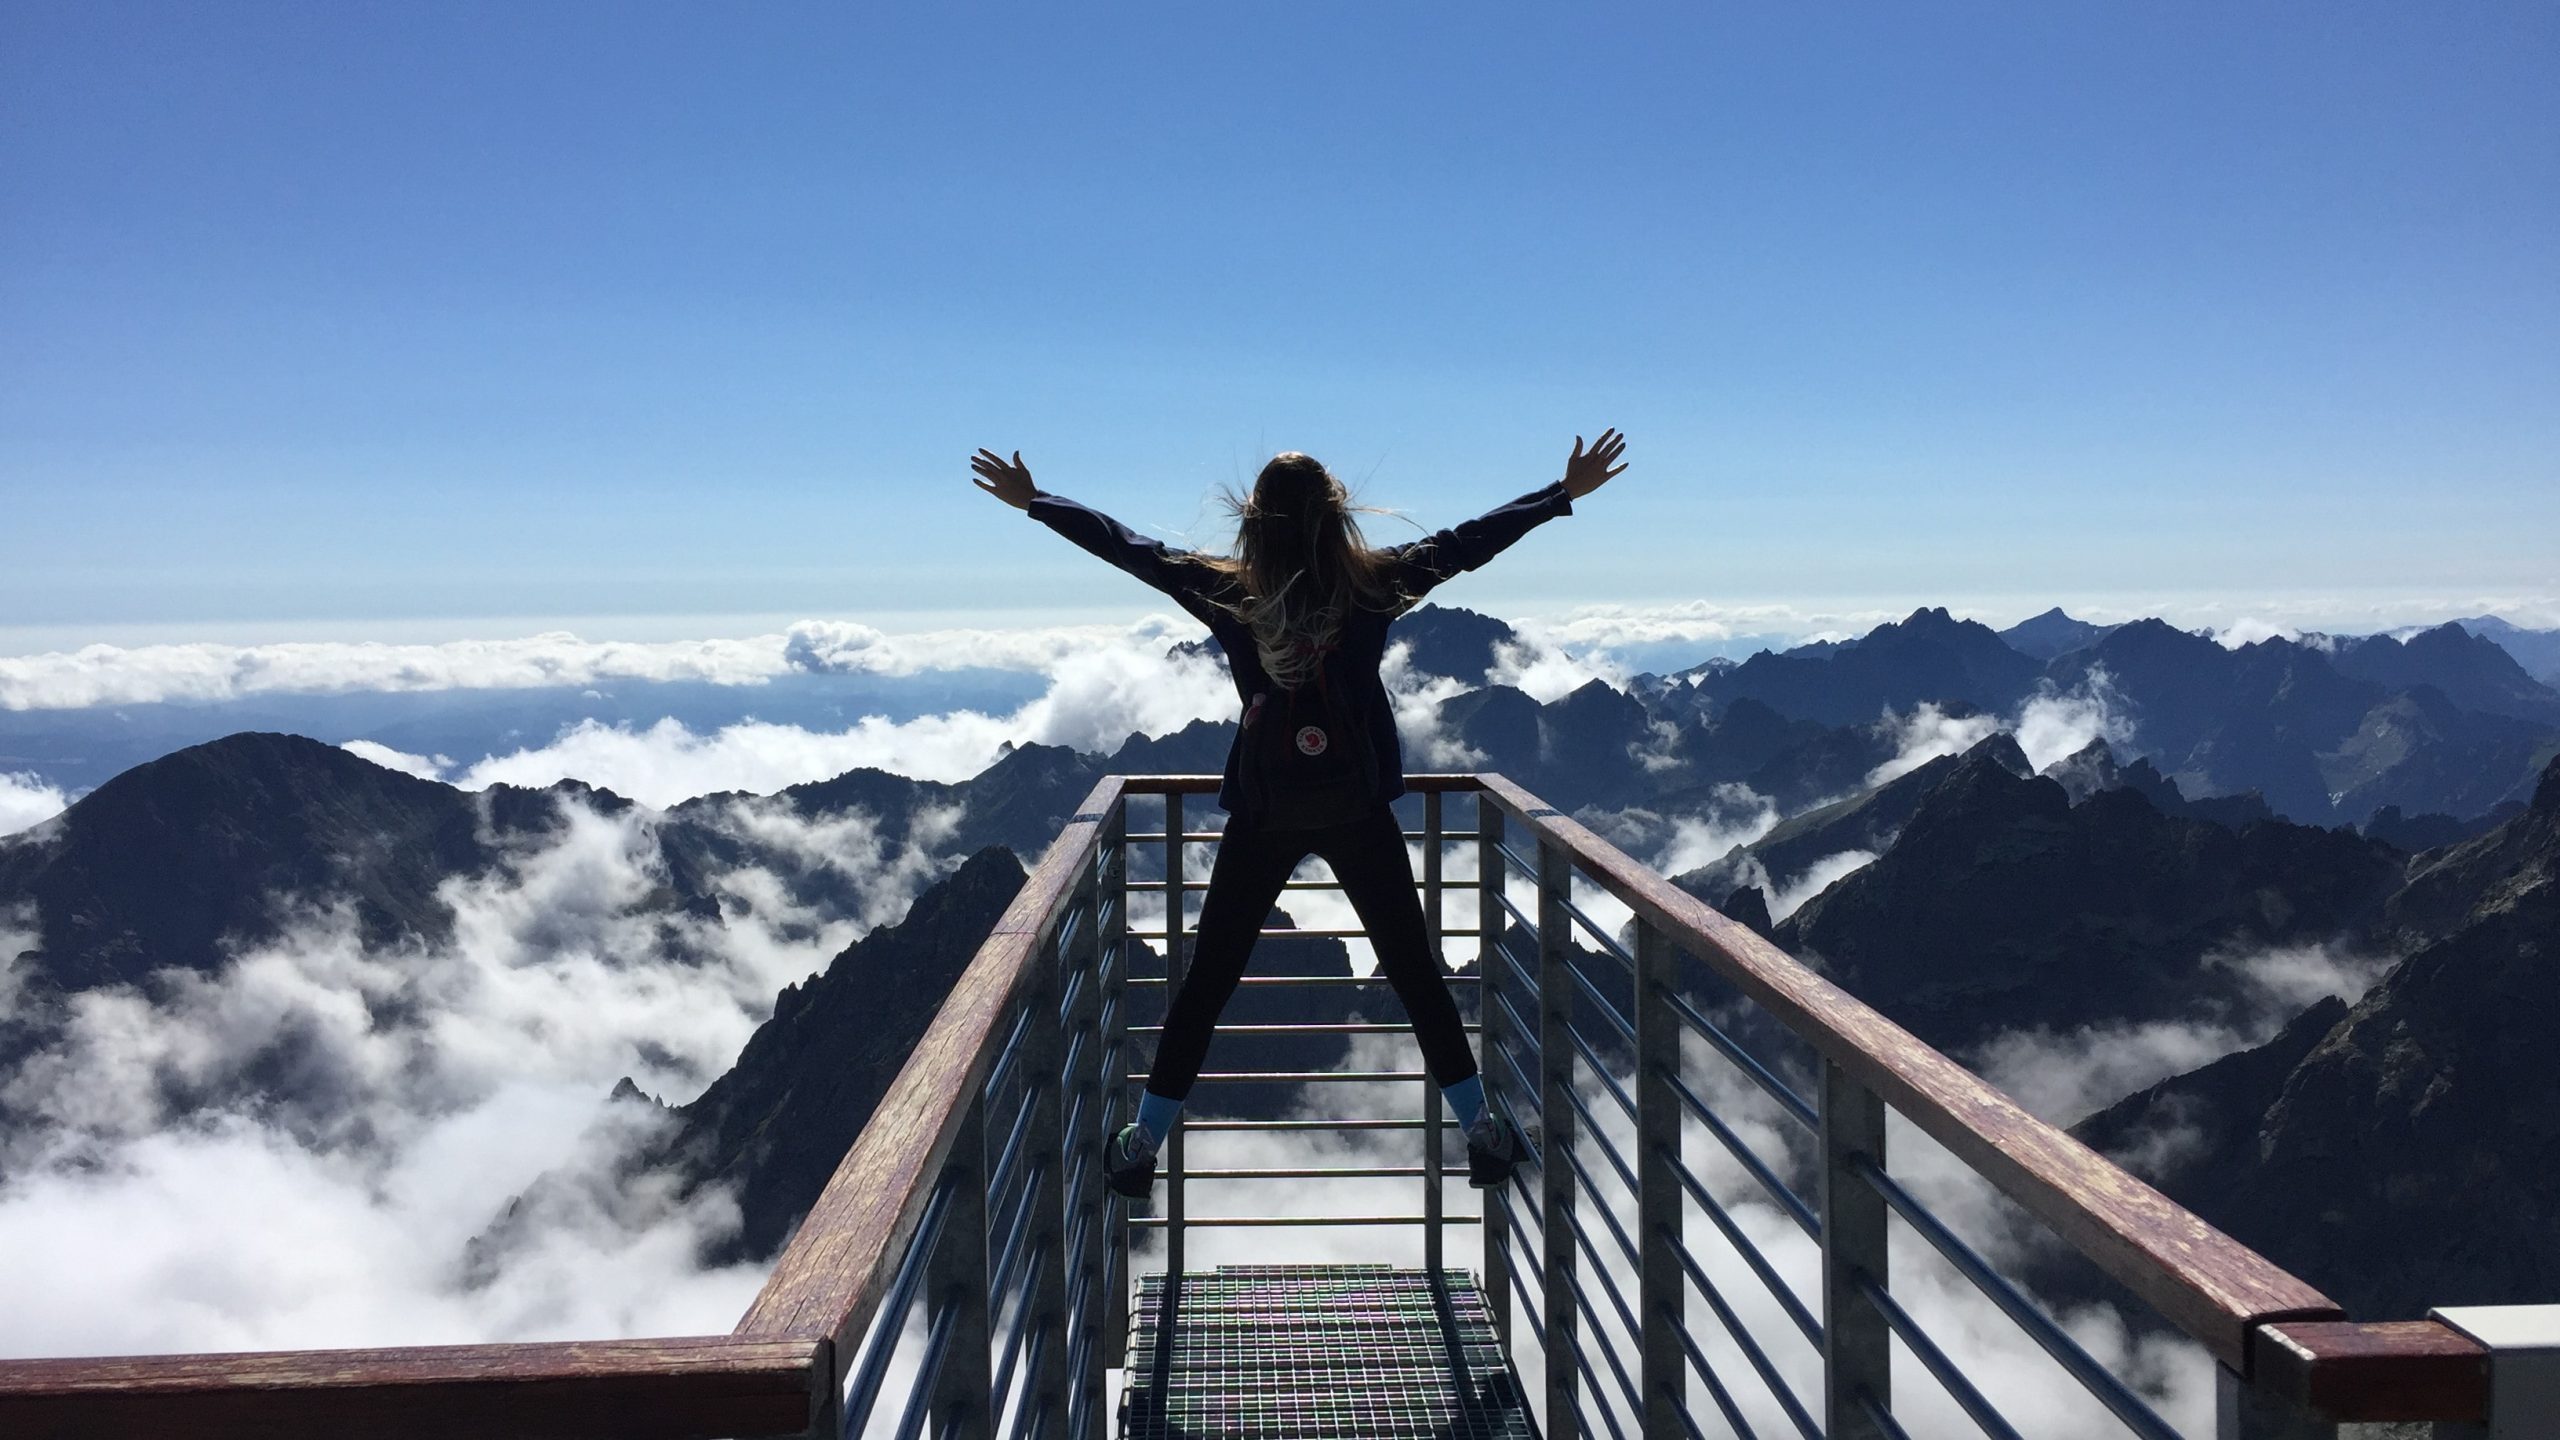 Person standing on hand rails with arms open facing the mountain.